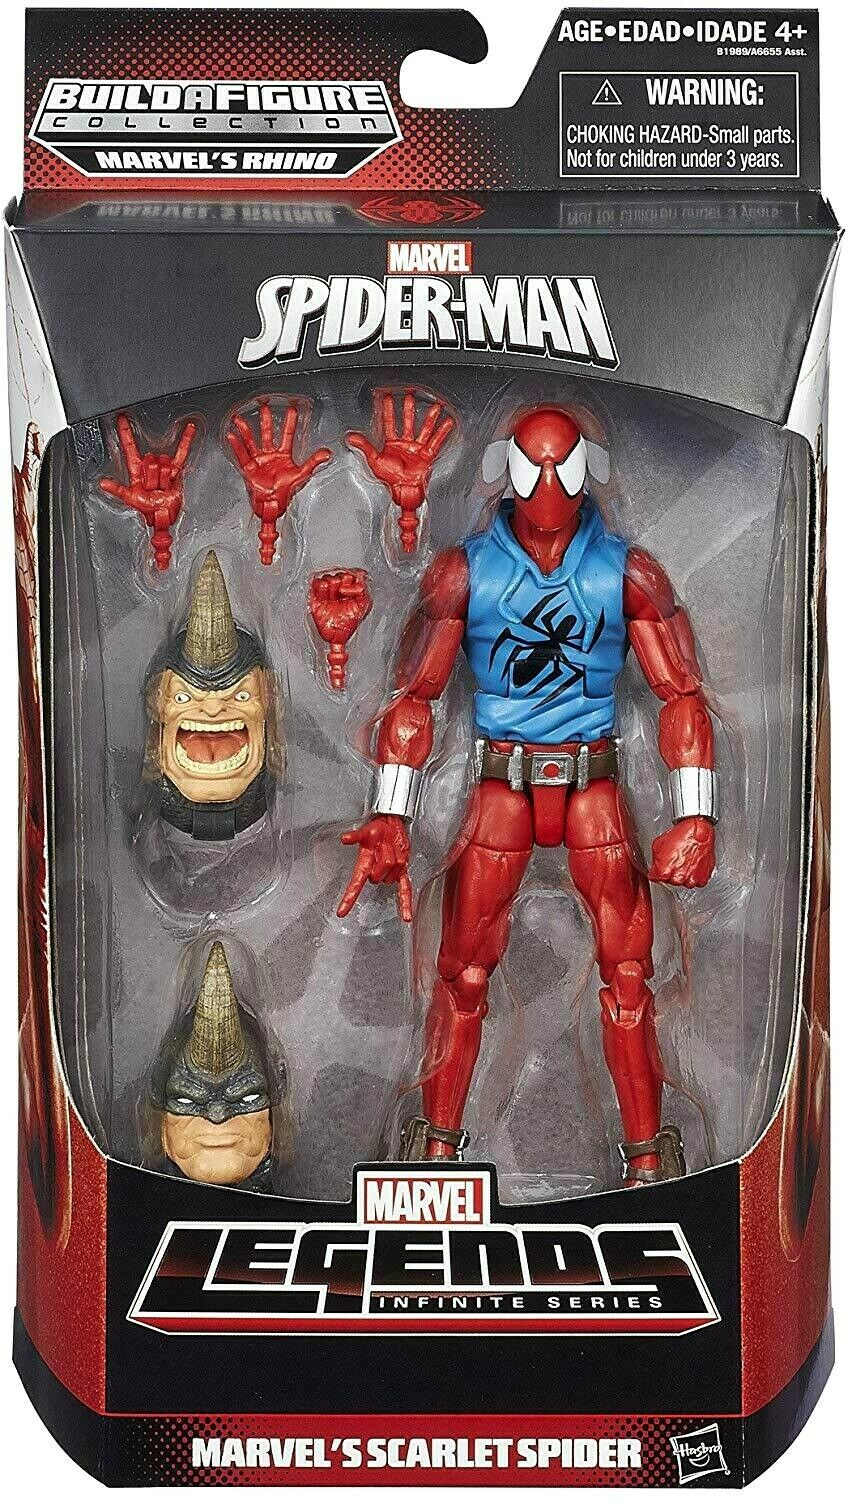 2015 Marvel Legends Infinite Series SCARLET SPIDER RHINO Series Sealed NEW